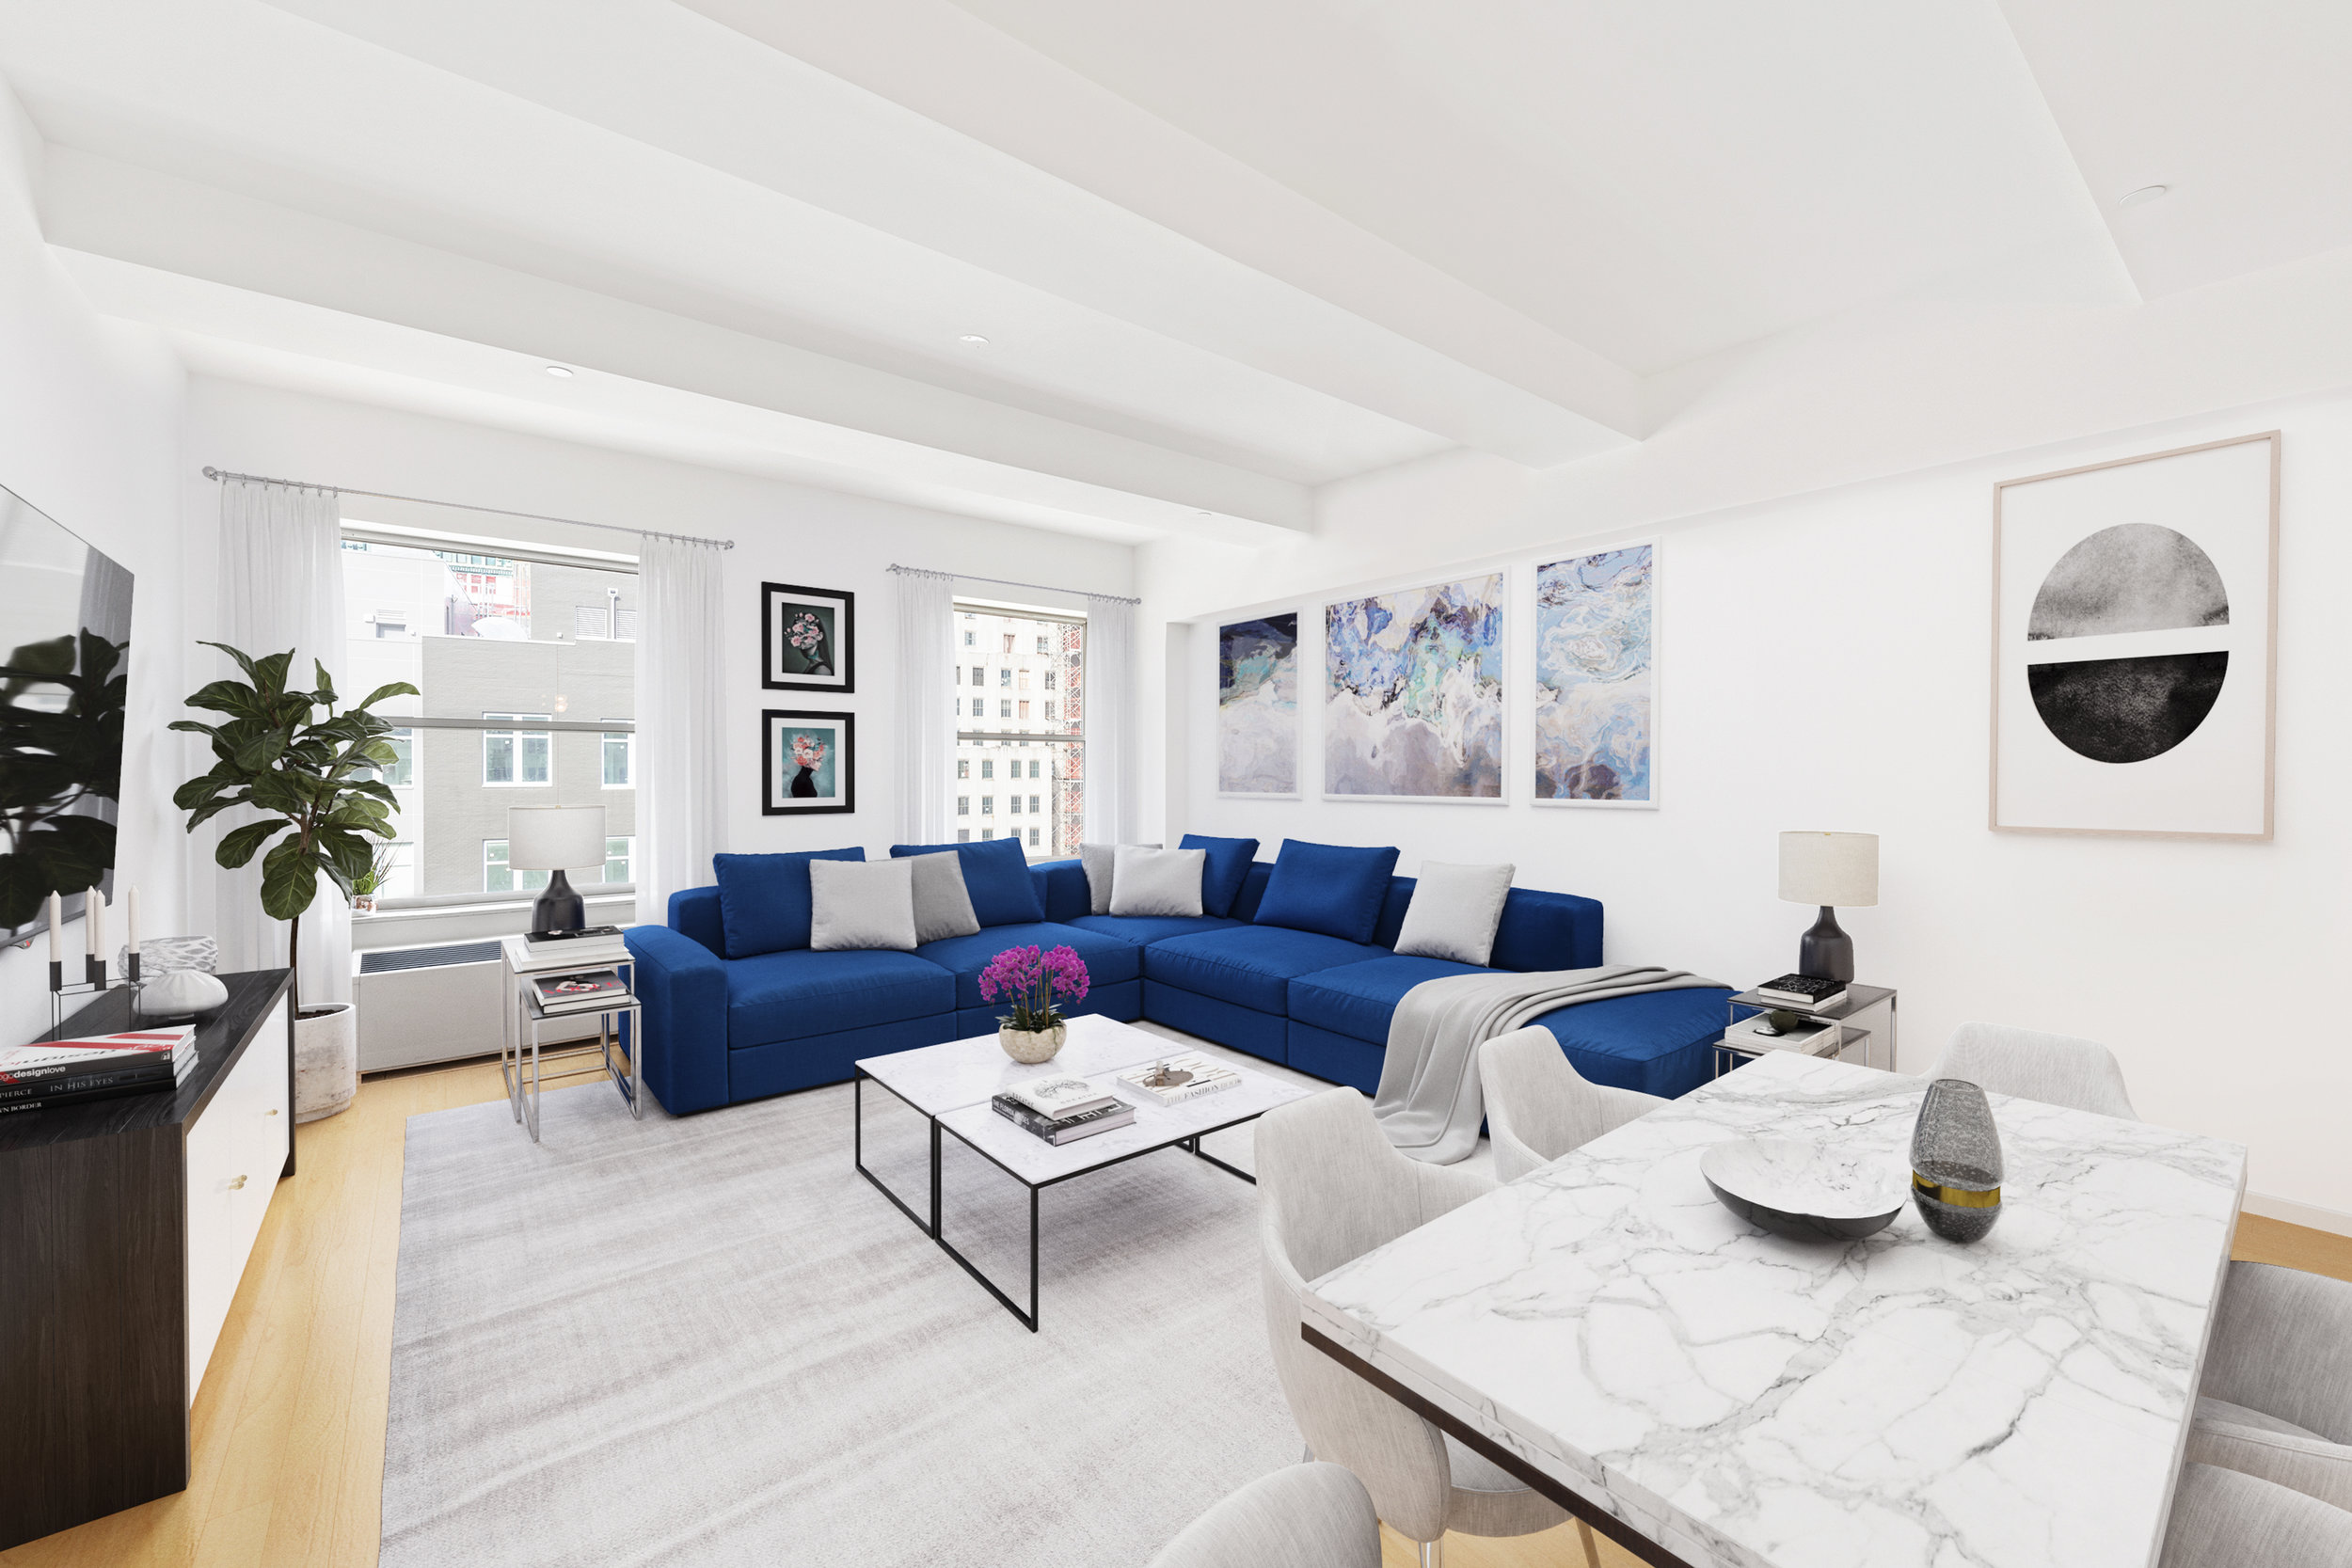 15 BROAD STREET, 2814 - $1,899,000 // 2 Beds // 2 Baths // 1,579 SQFTA chic condo nestled in the heart of the Financial District; this luminous high-floor home blends an array of contemporary finishes with a thoughtful, efficient layout that maximizes space. This convertible 3 bedroom home spans 1,579 sq. ft. and includes 1 bedroom, 2 bathrooms, 2 spacious home offices with 11-ft beamed ceilings, huge windows western exposure, gorgeous hardwood floors, sleek built-ins, and a convenient in-unit Bosch washer/dryer.